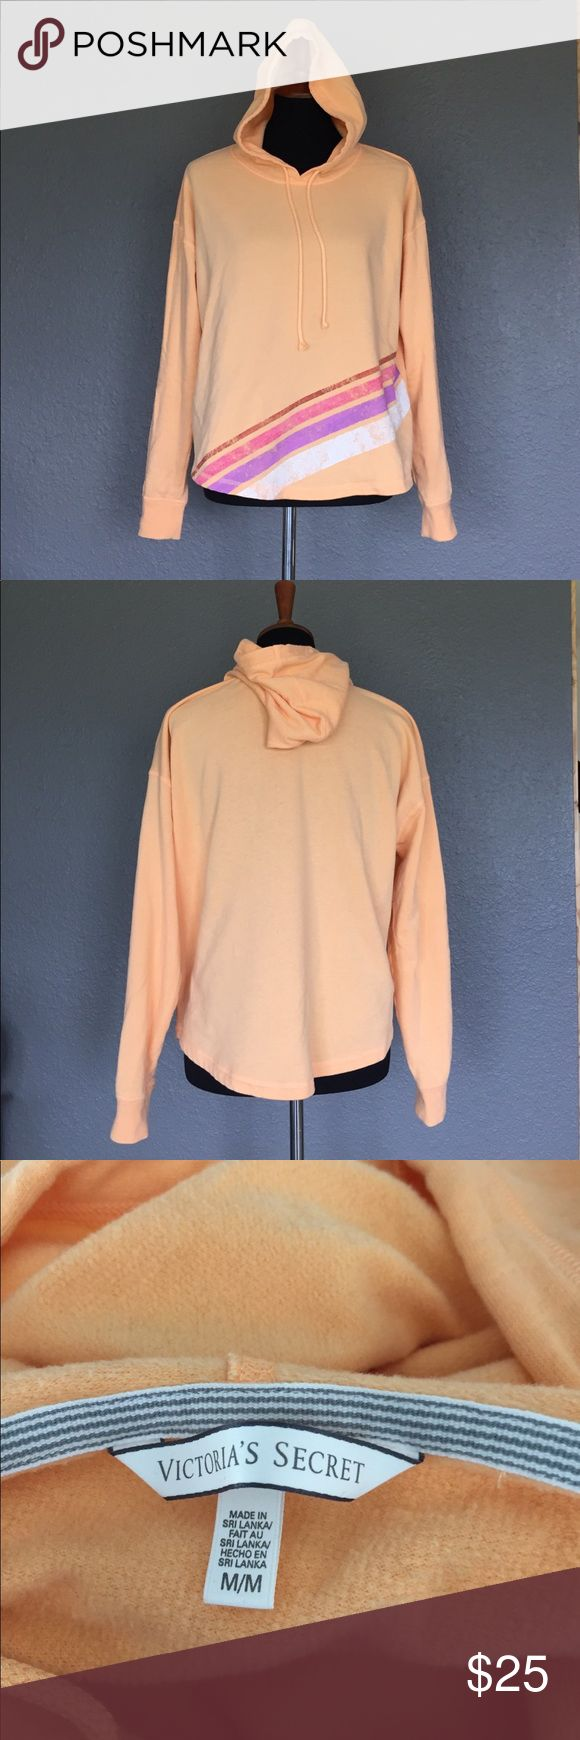 """Victoria Secret Hoodie EUC VS beach hoodie. Light weight, curves hemline. Measures 21"""" from top of shoulder to hem and sleeves measure 24"""".  Great for summer nights and fun bright colors. A little bit retro! Victoria's Secret Tops Sweatshirts & Hoodies"""